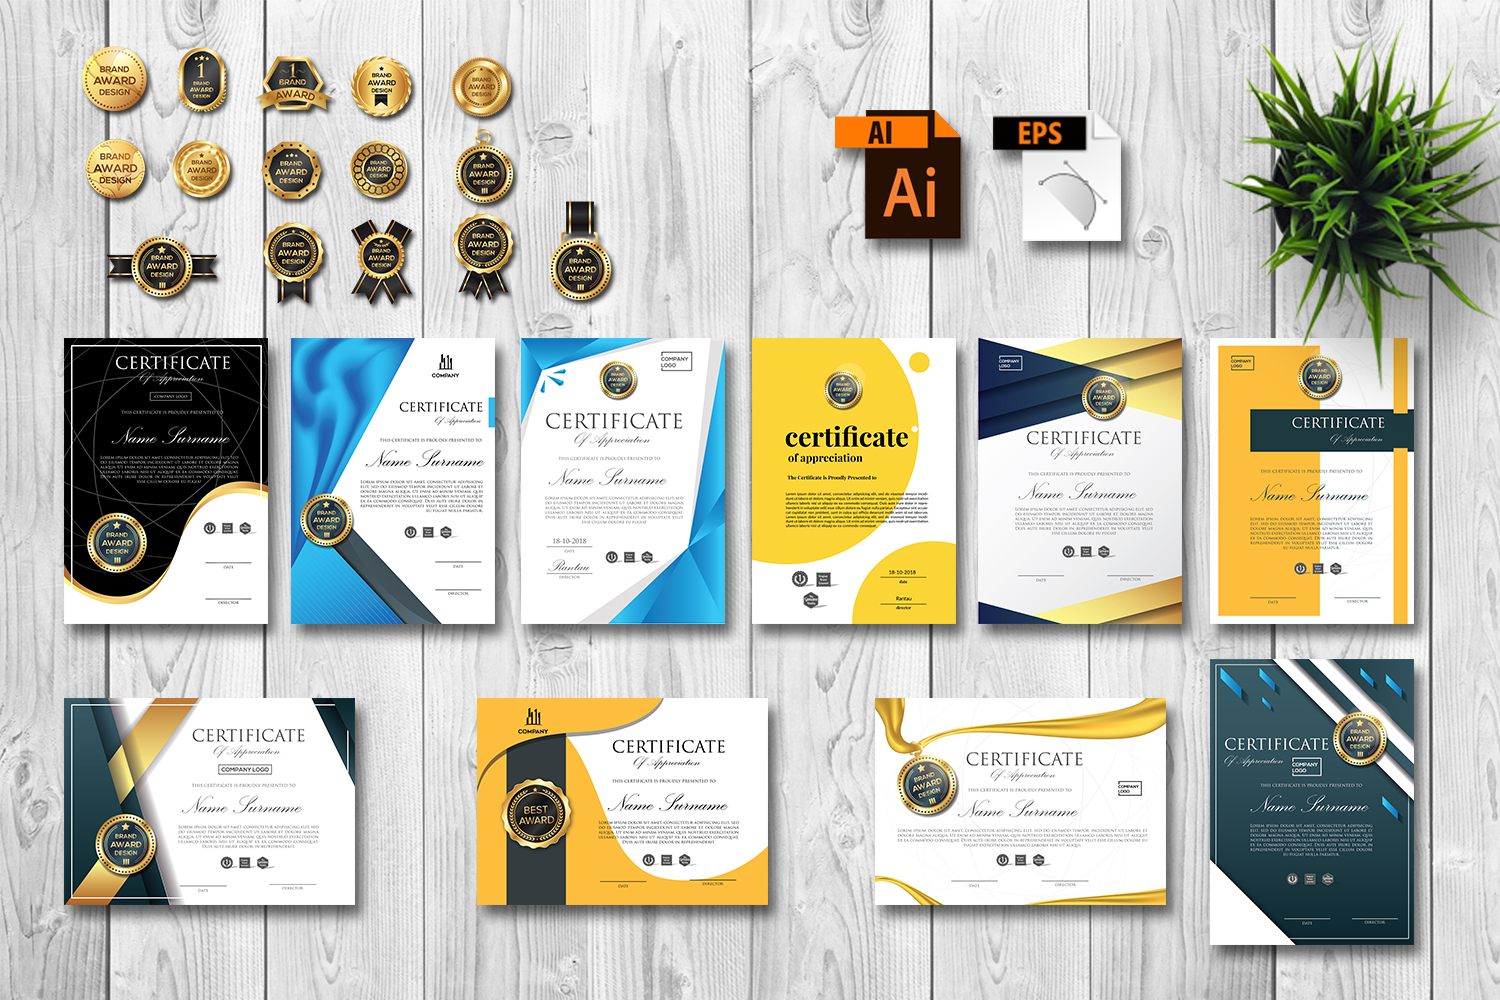 Creative Certificate Design Template with 15 Badge Vol. 2 example image 1